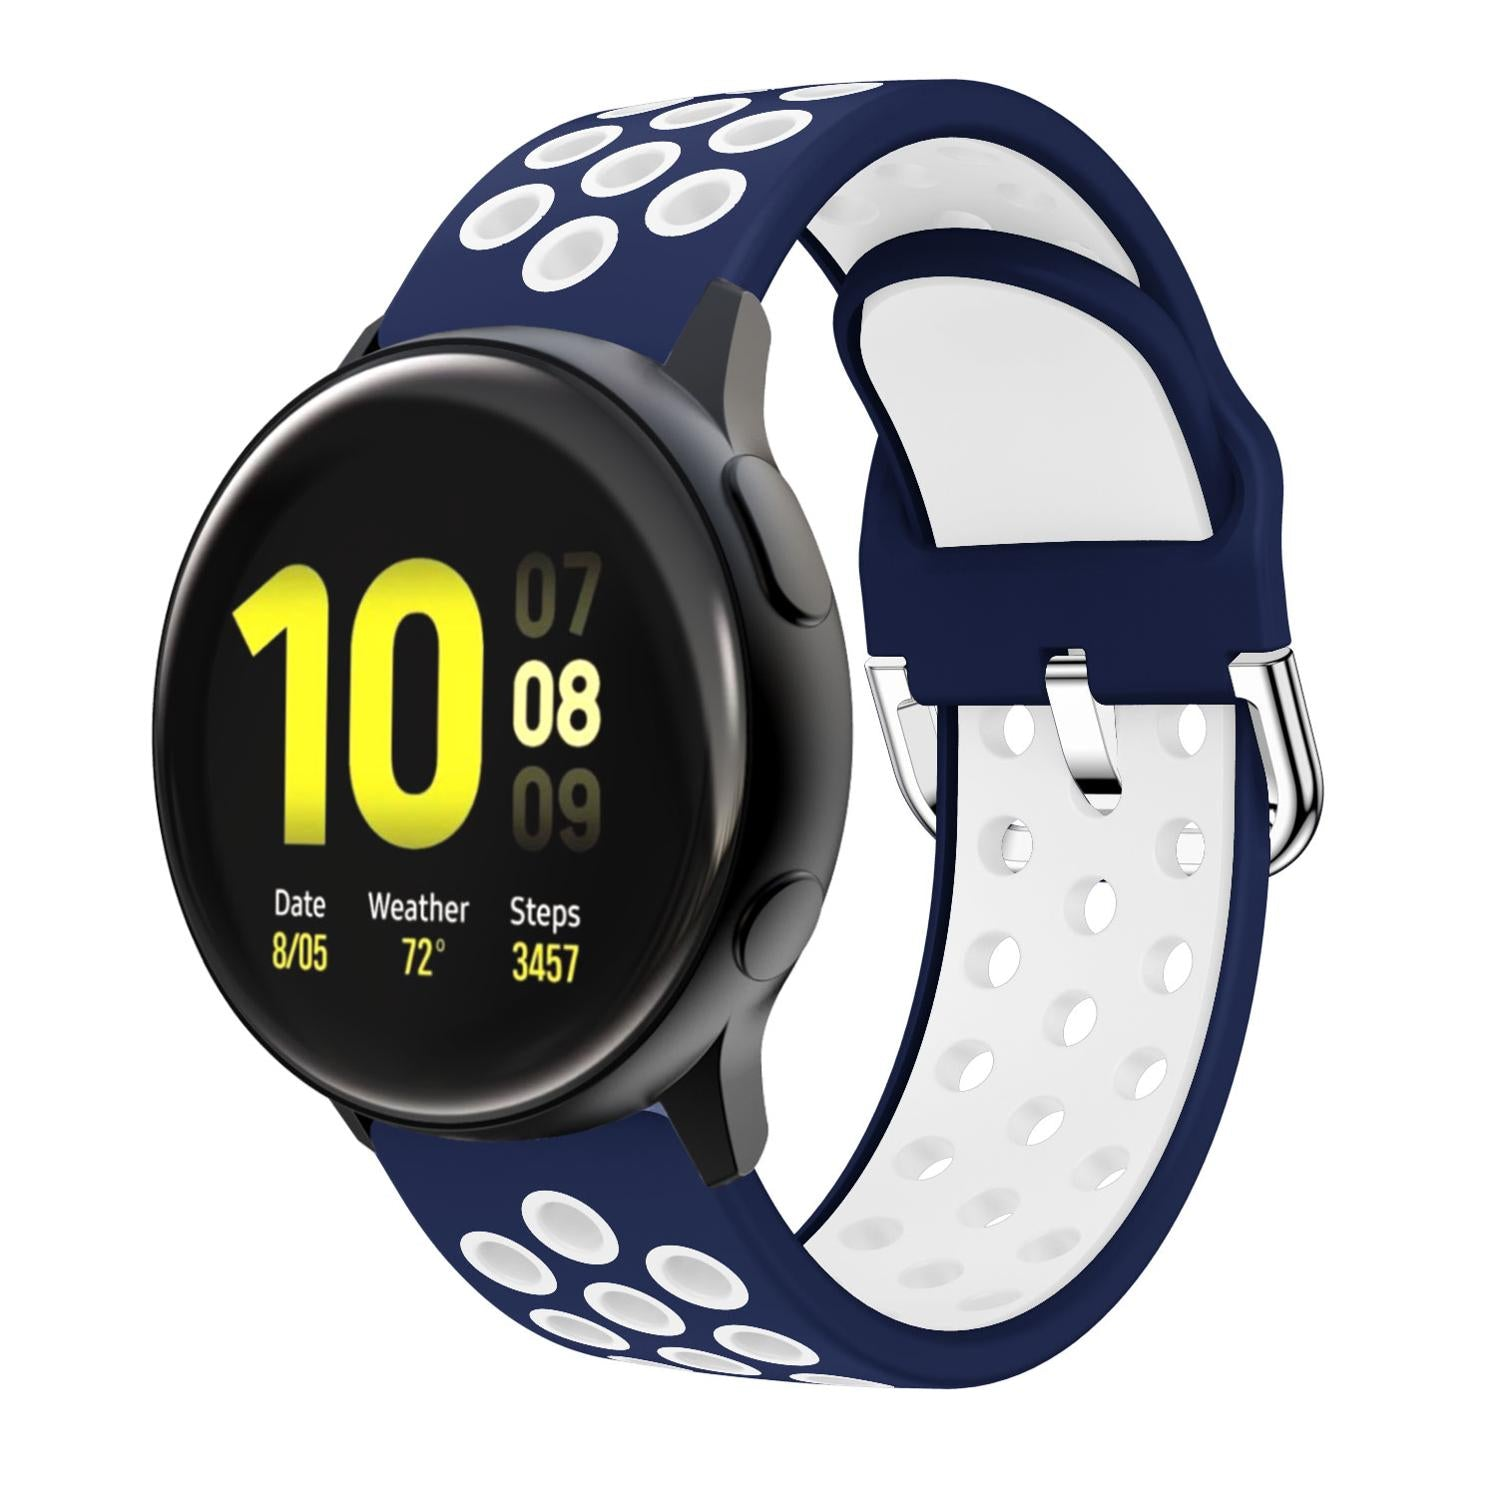 Sport  Silicone Replacement watch Band For Samsung Galaxy watch active 1 active 2 40mm 44mm